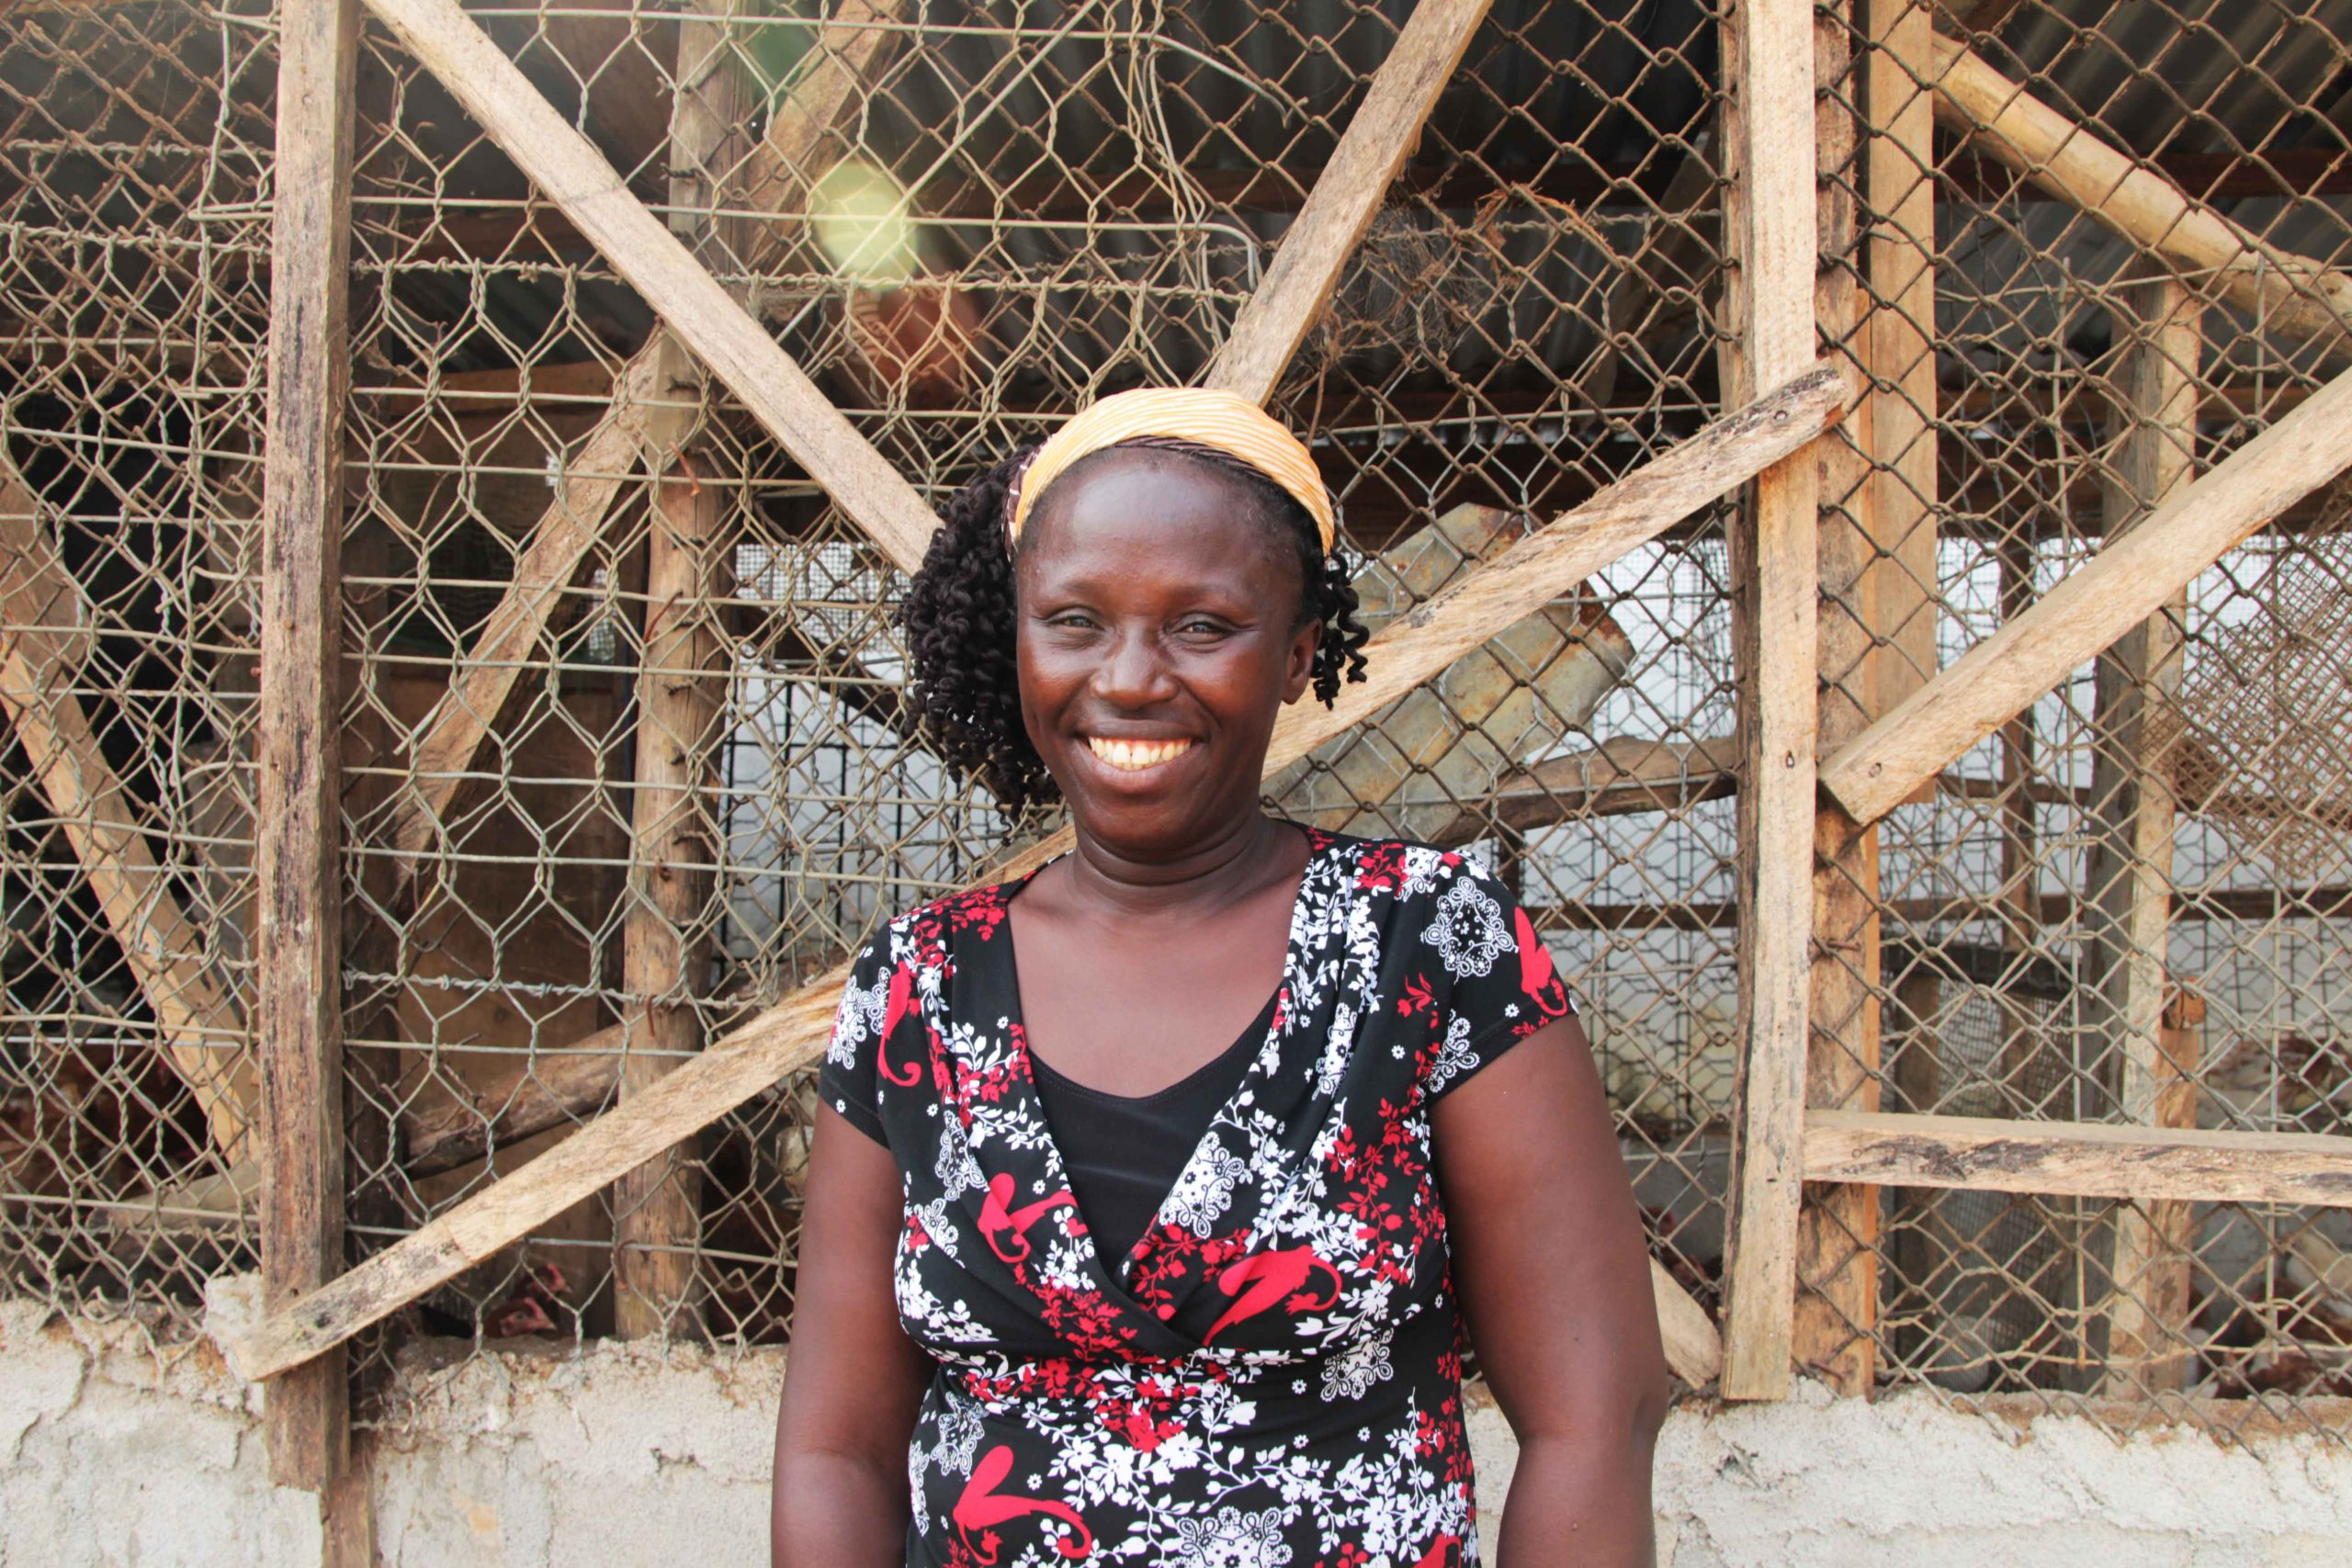 Ciatta, a chicken farmer in Liberia